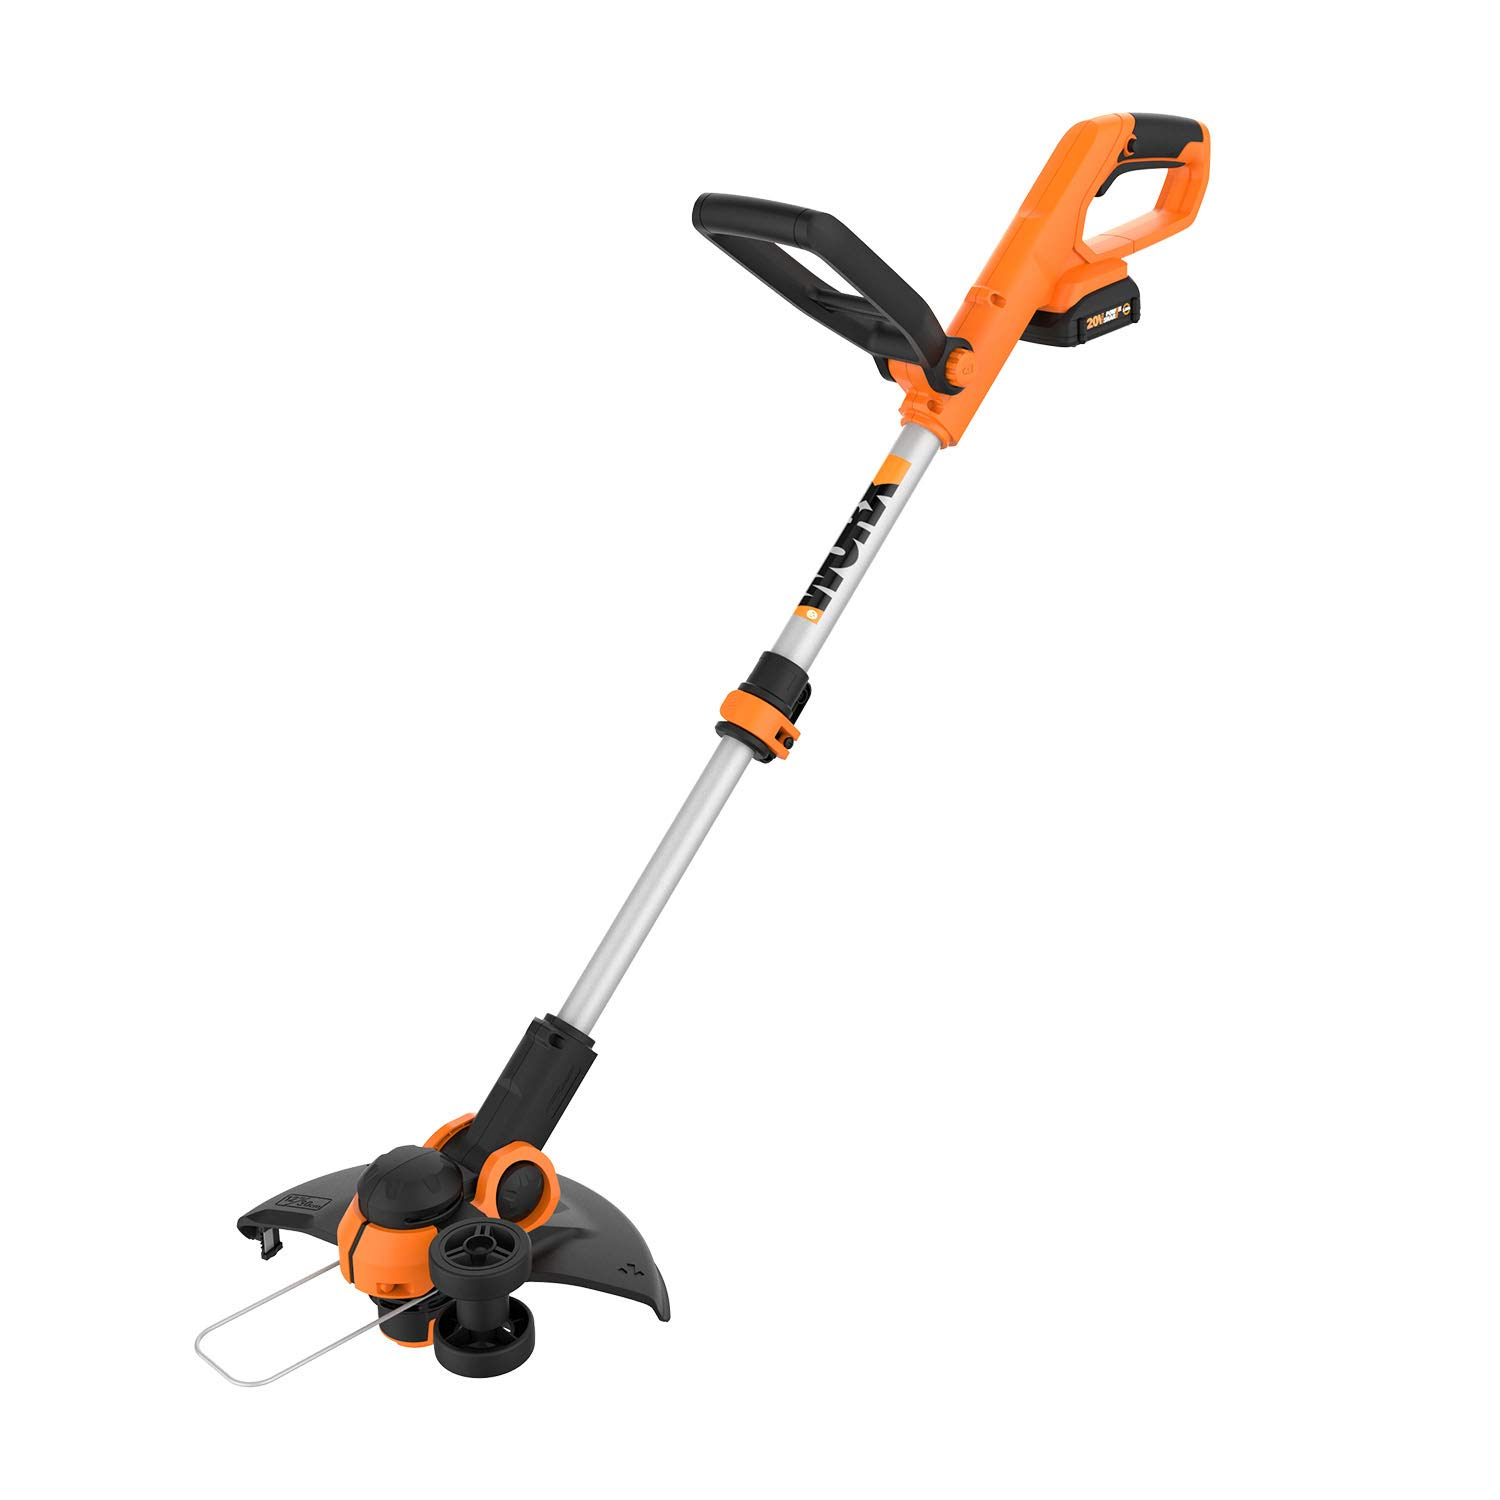 Worx WG162 20V 12 Cordless String Trimmer Edger, Battery and Charger included